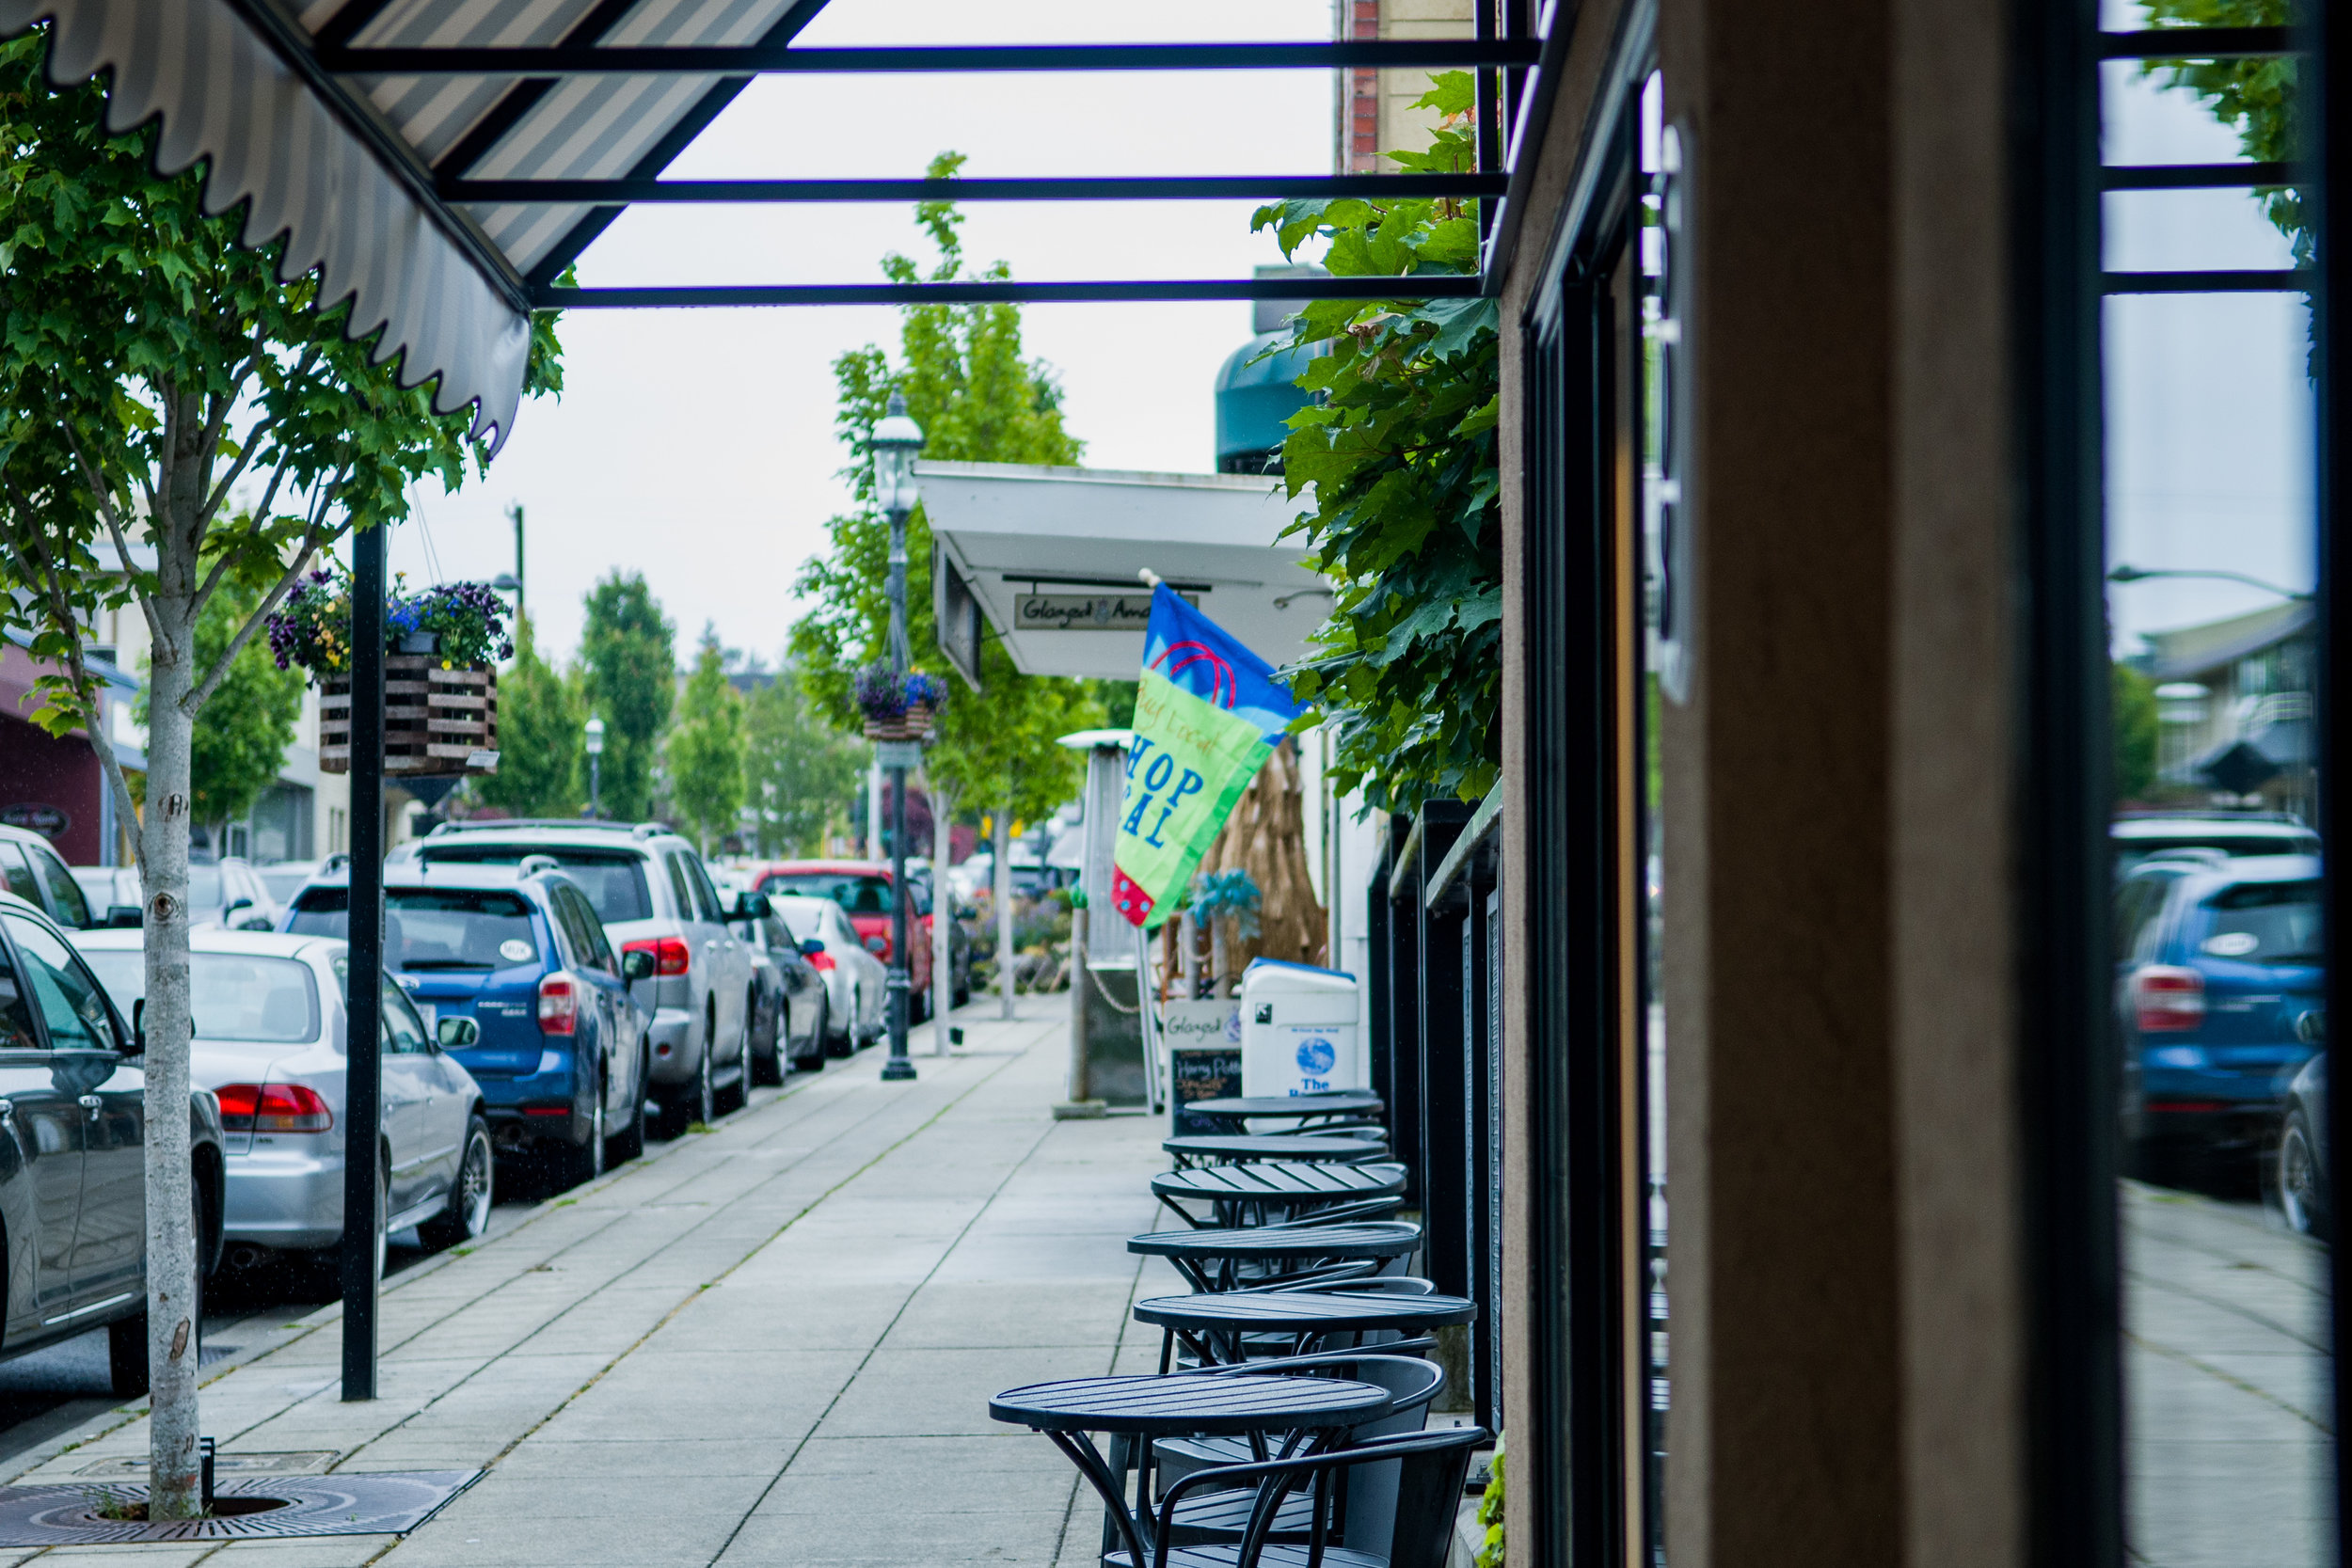 110-market-edmonds-petrichor-photo.jpg